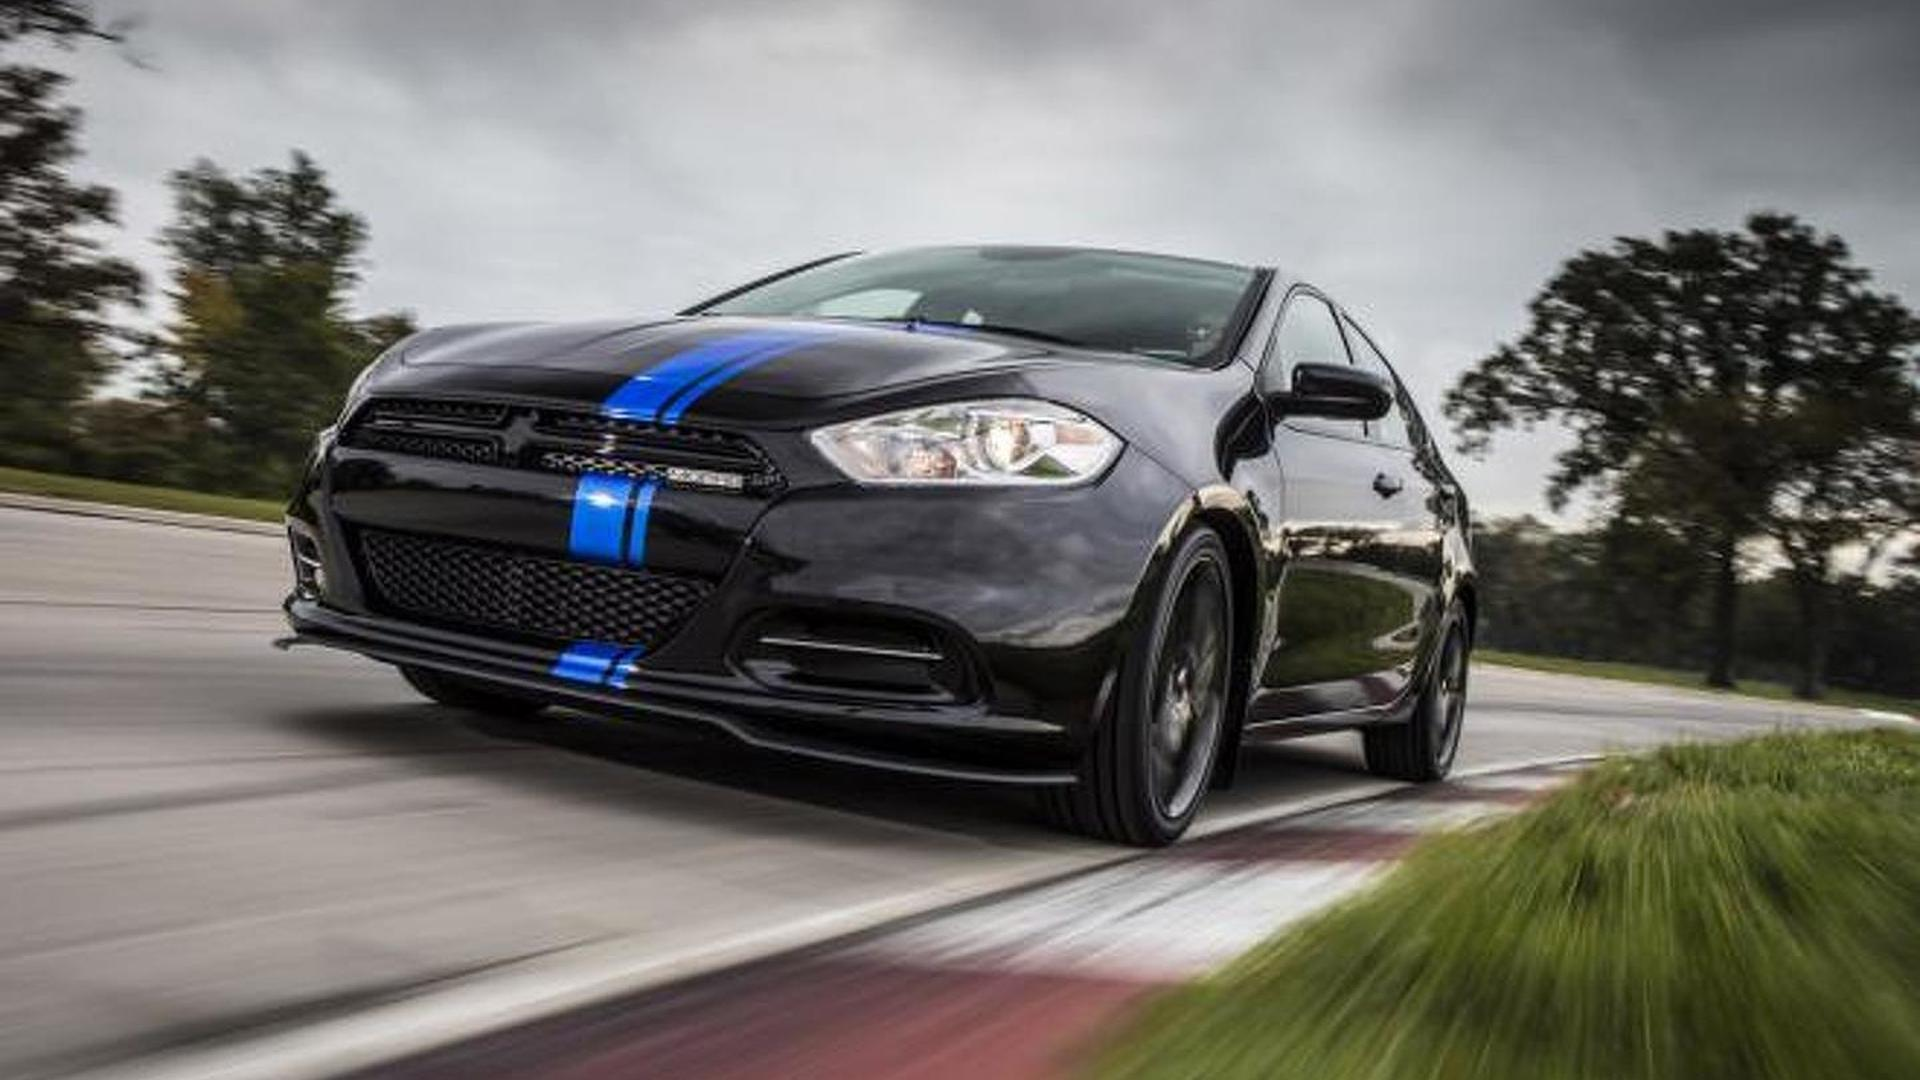 Dodge Dart Srt4 >> Dodge Dart Srt4 Likely A Ways Off As The Company Is In